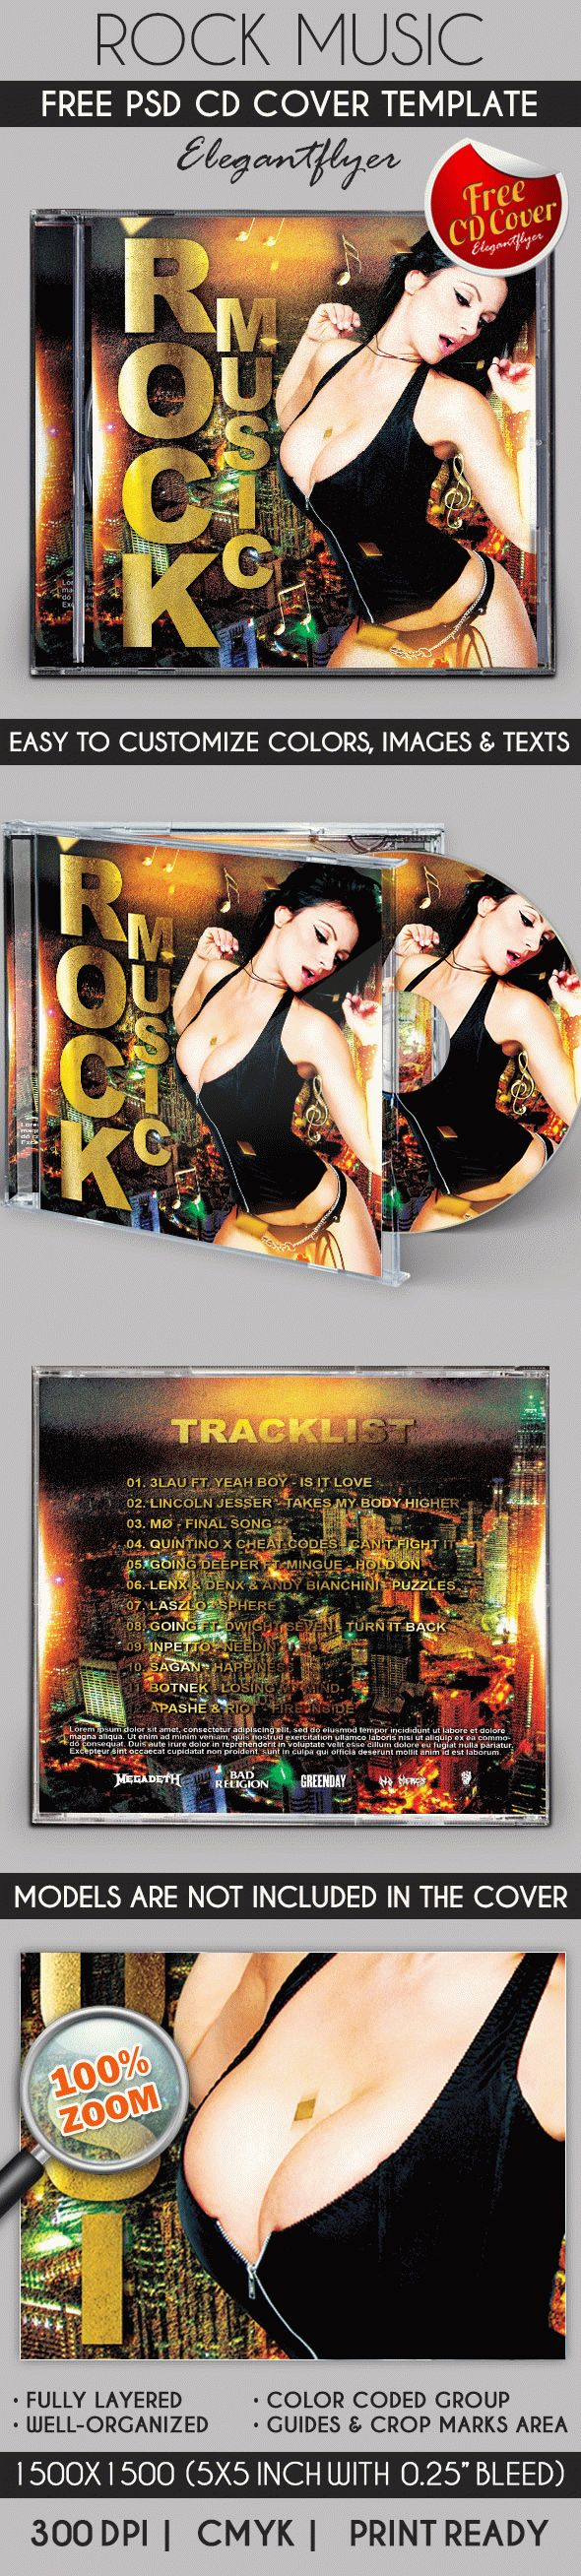 Rock Star – Free CD Cover PSD Template